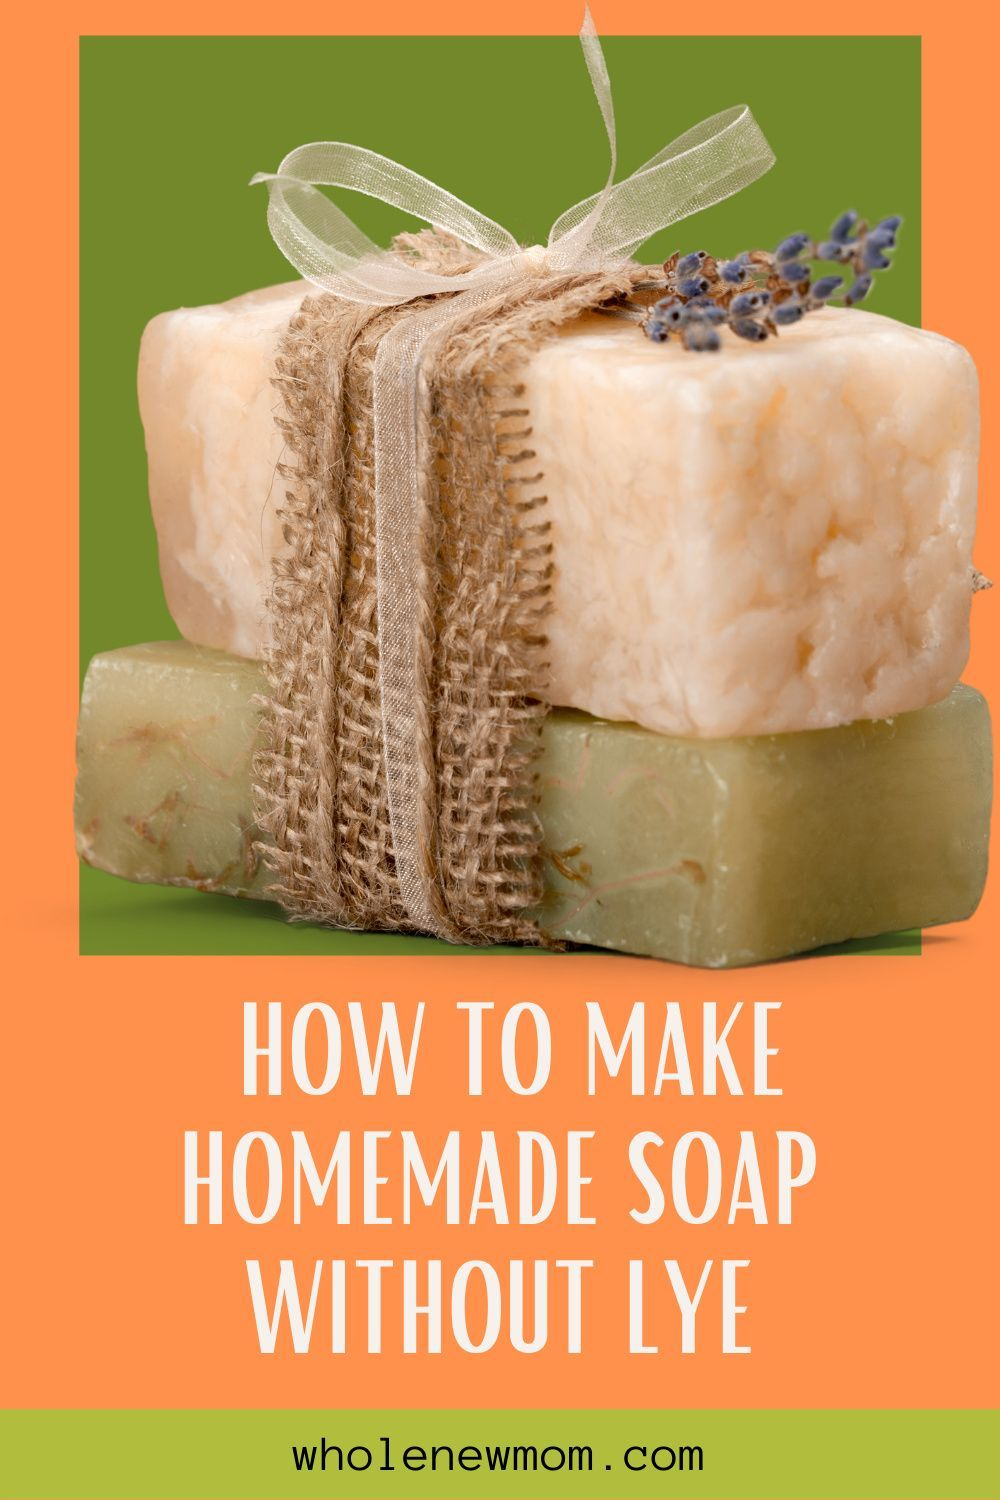 How To Make Soap Without Lye You Ll See What I Mean Whole New Mom In 2020 Food Processor Recipes Homemade How To Make Homemade